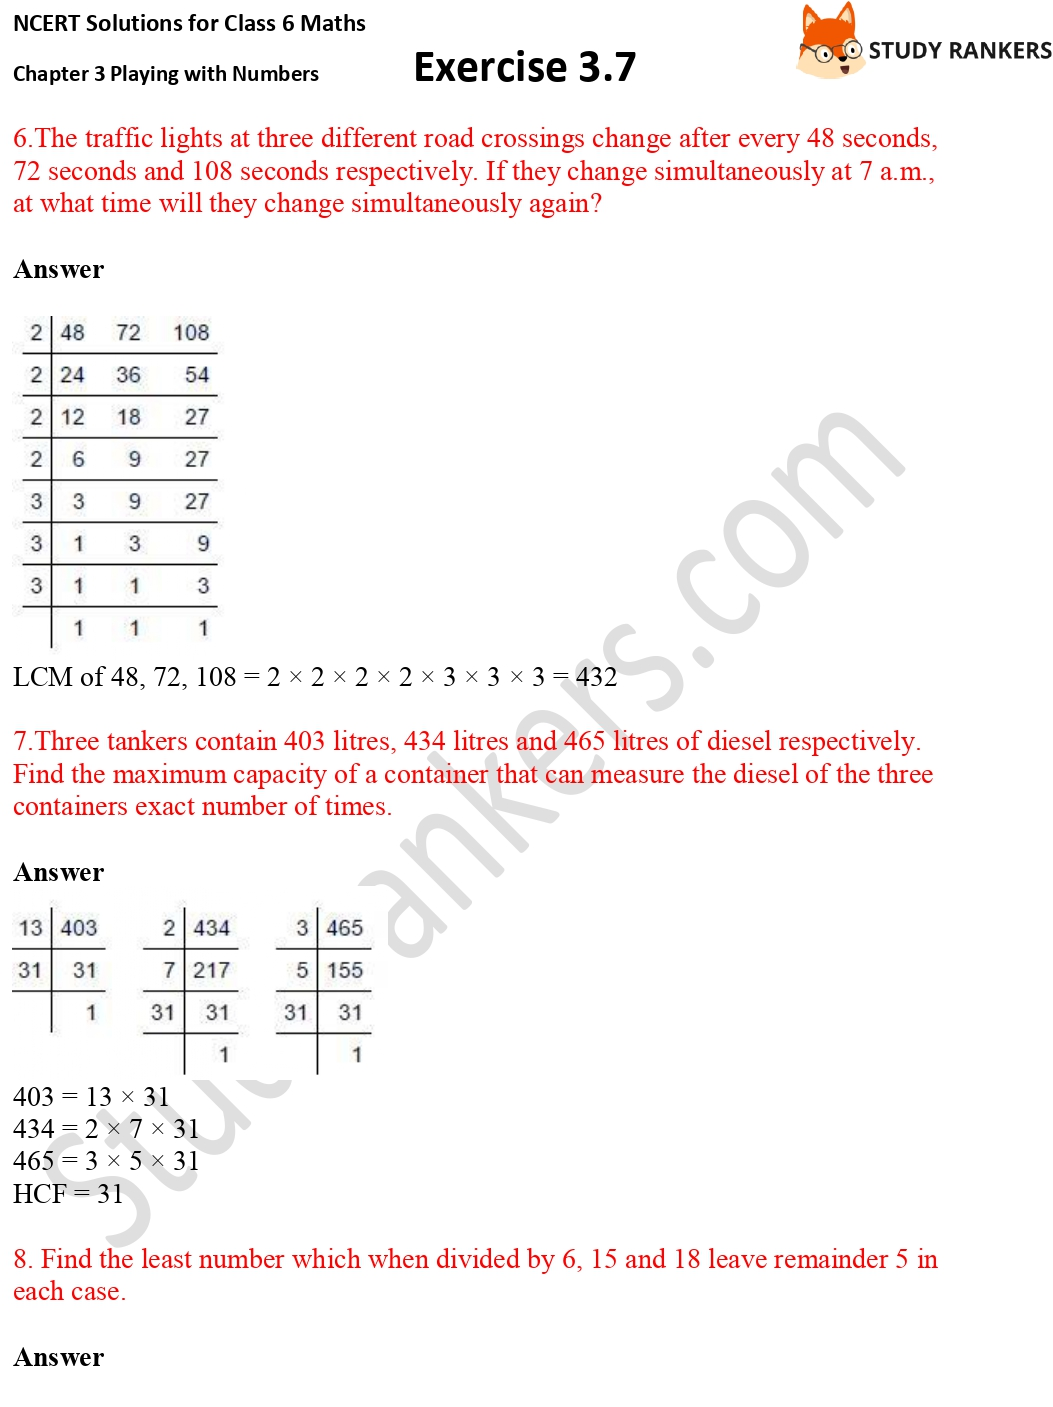 NCERT Solutions for Class 6 Maths Chapter 3 Playing with Numbers Exercise 3.7 Part 3